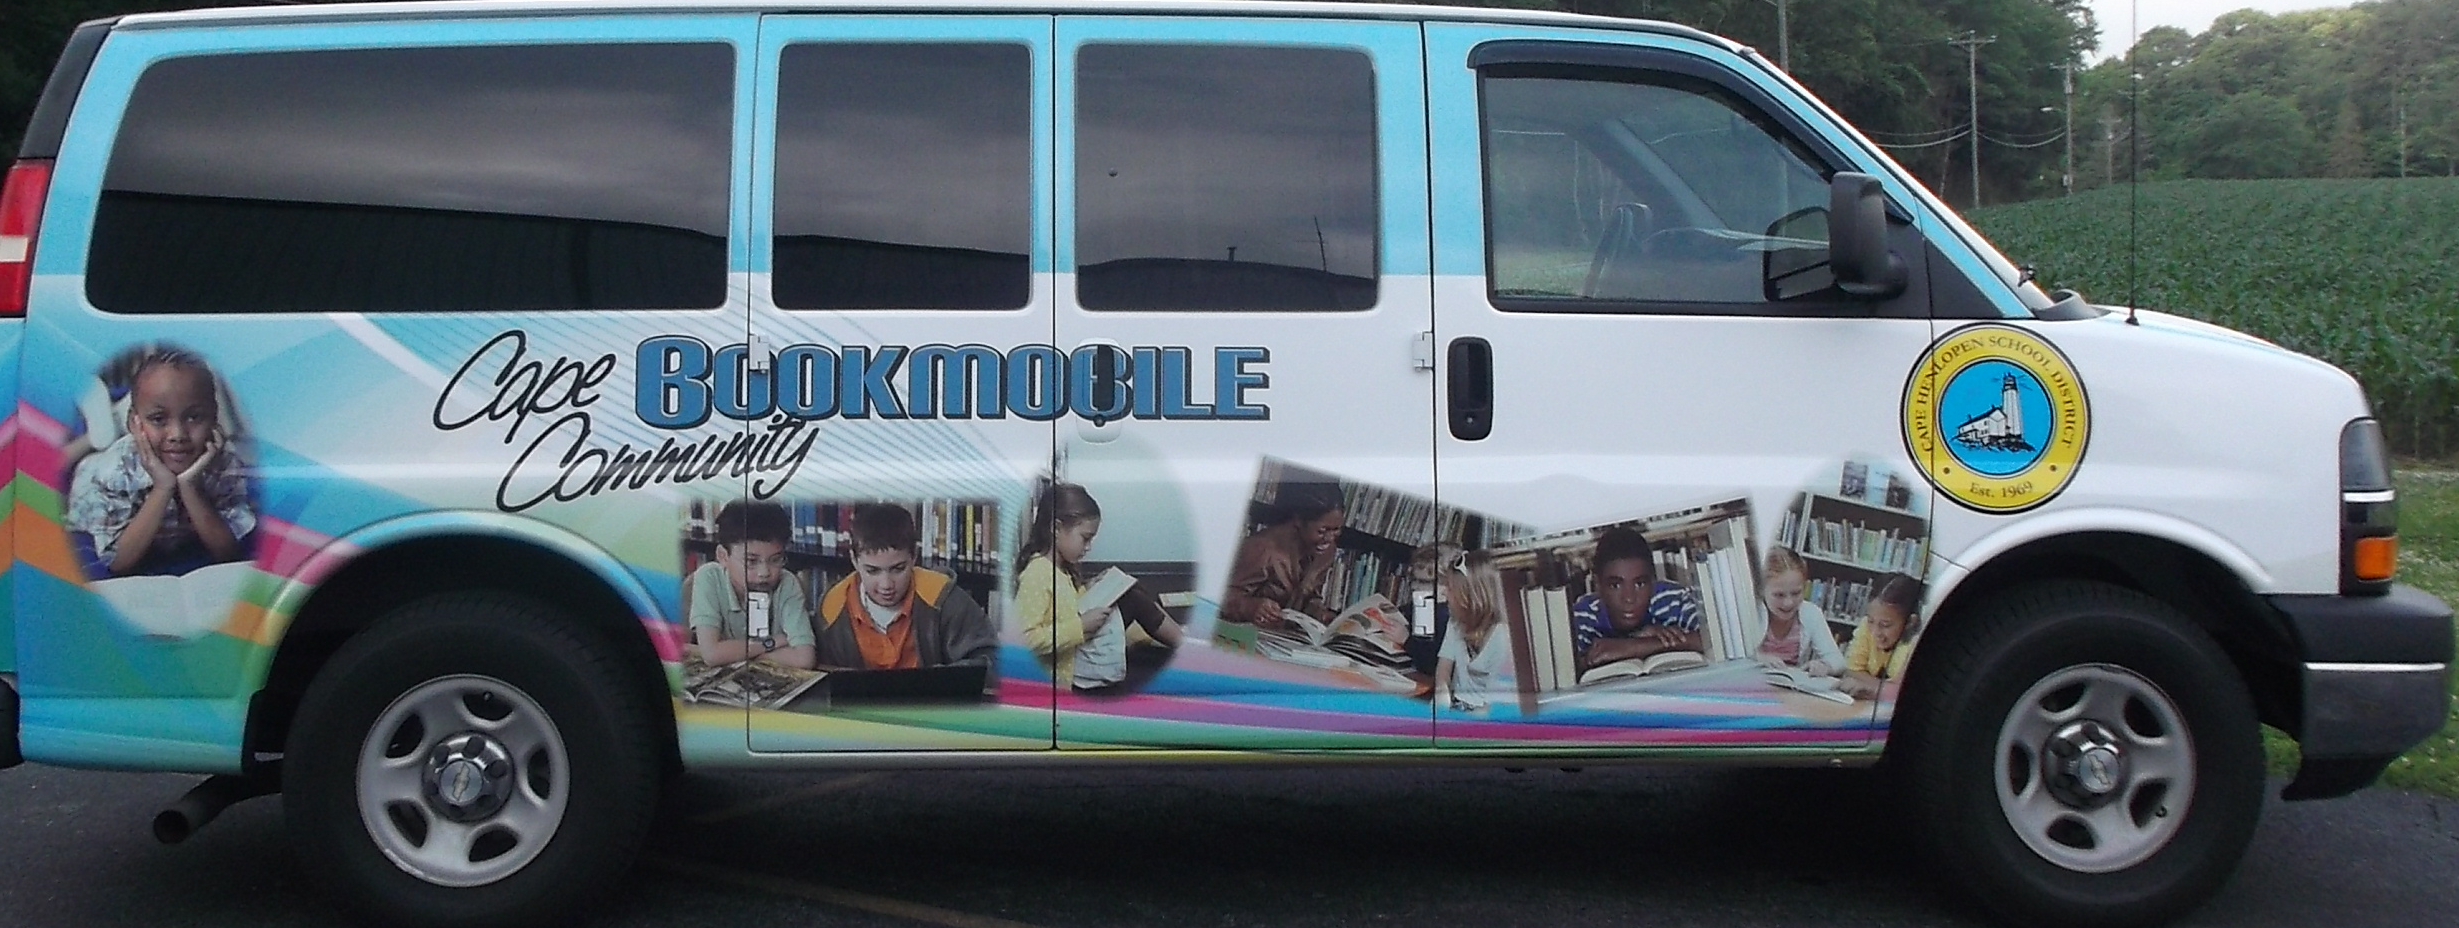 Cape Bookmobile